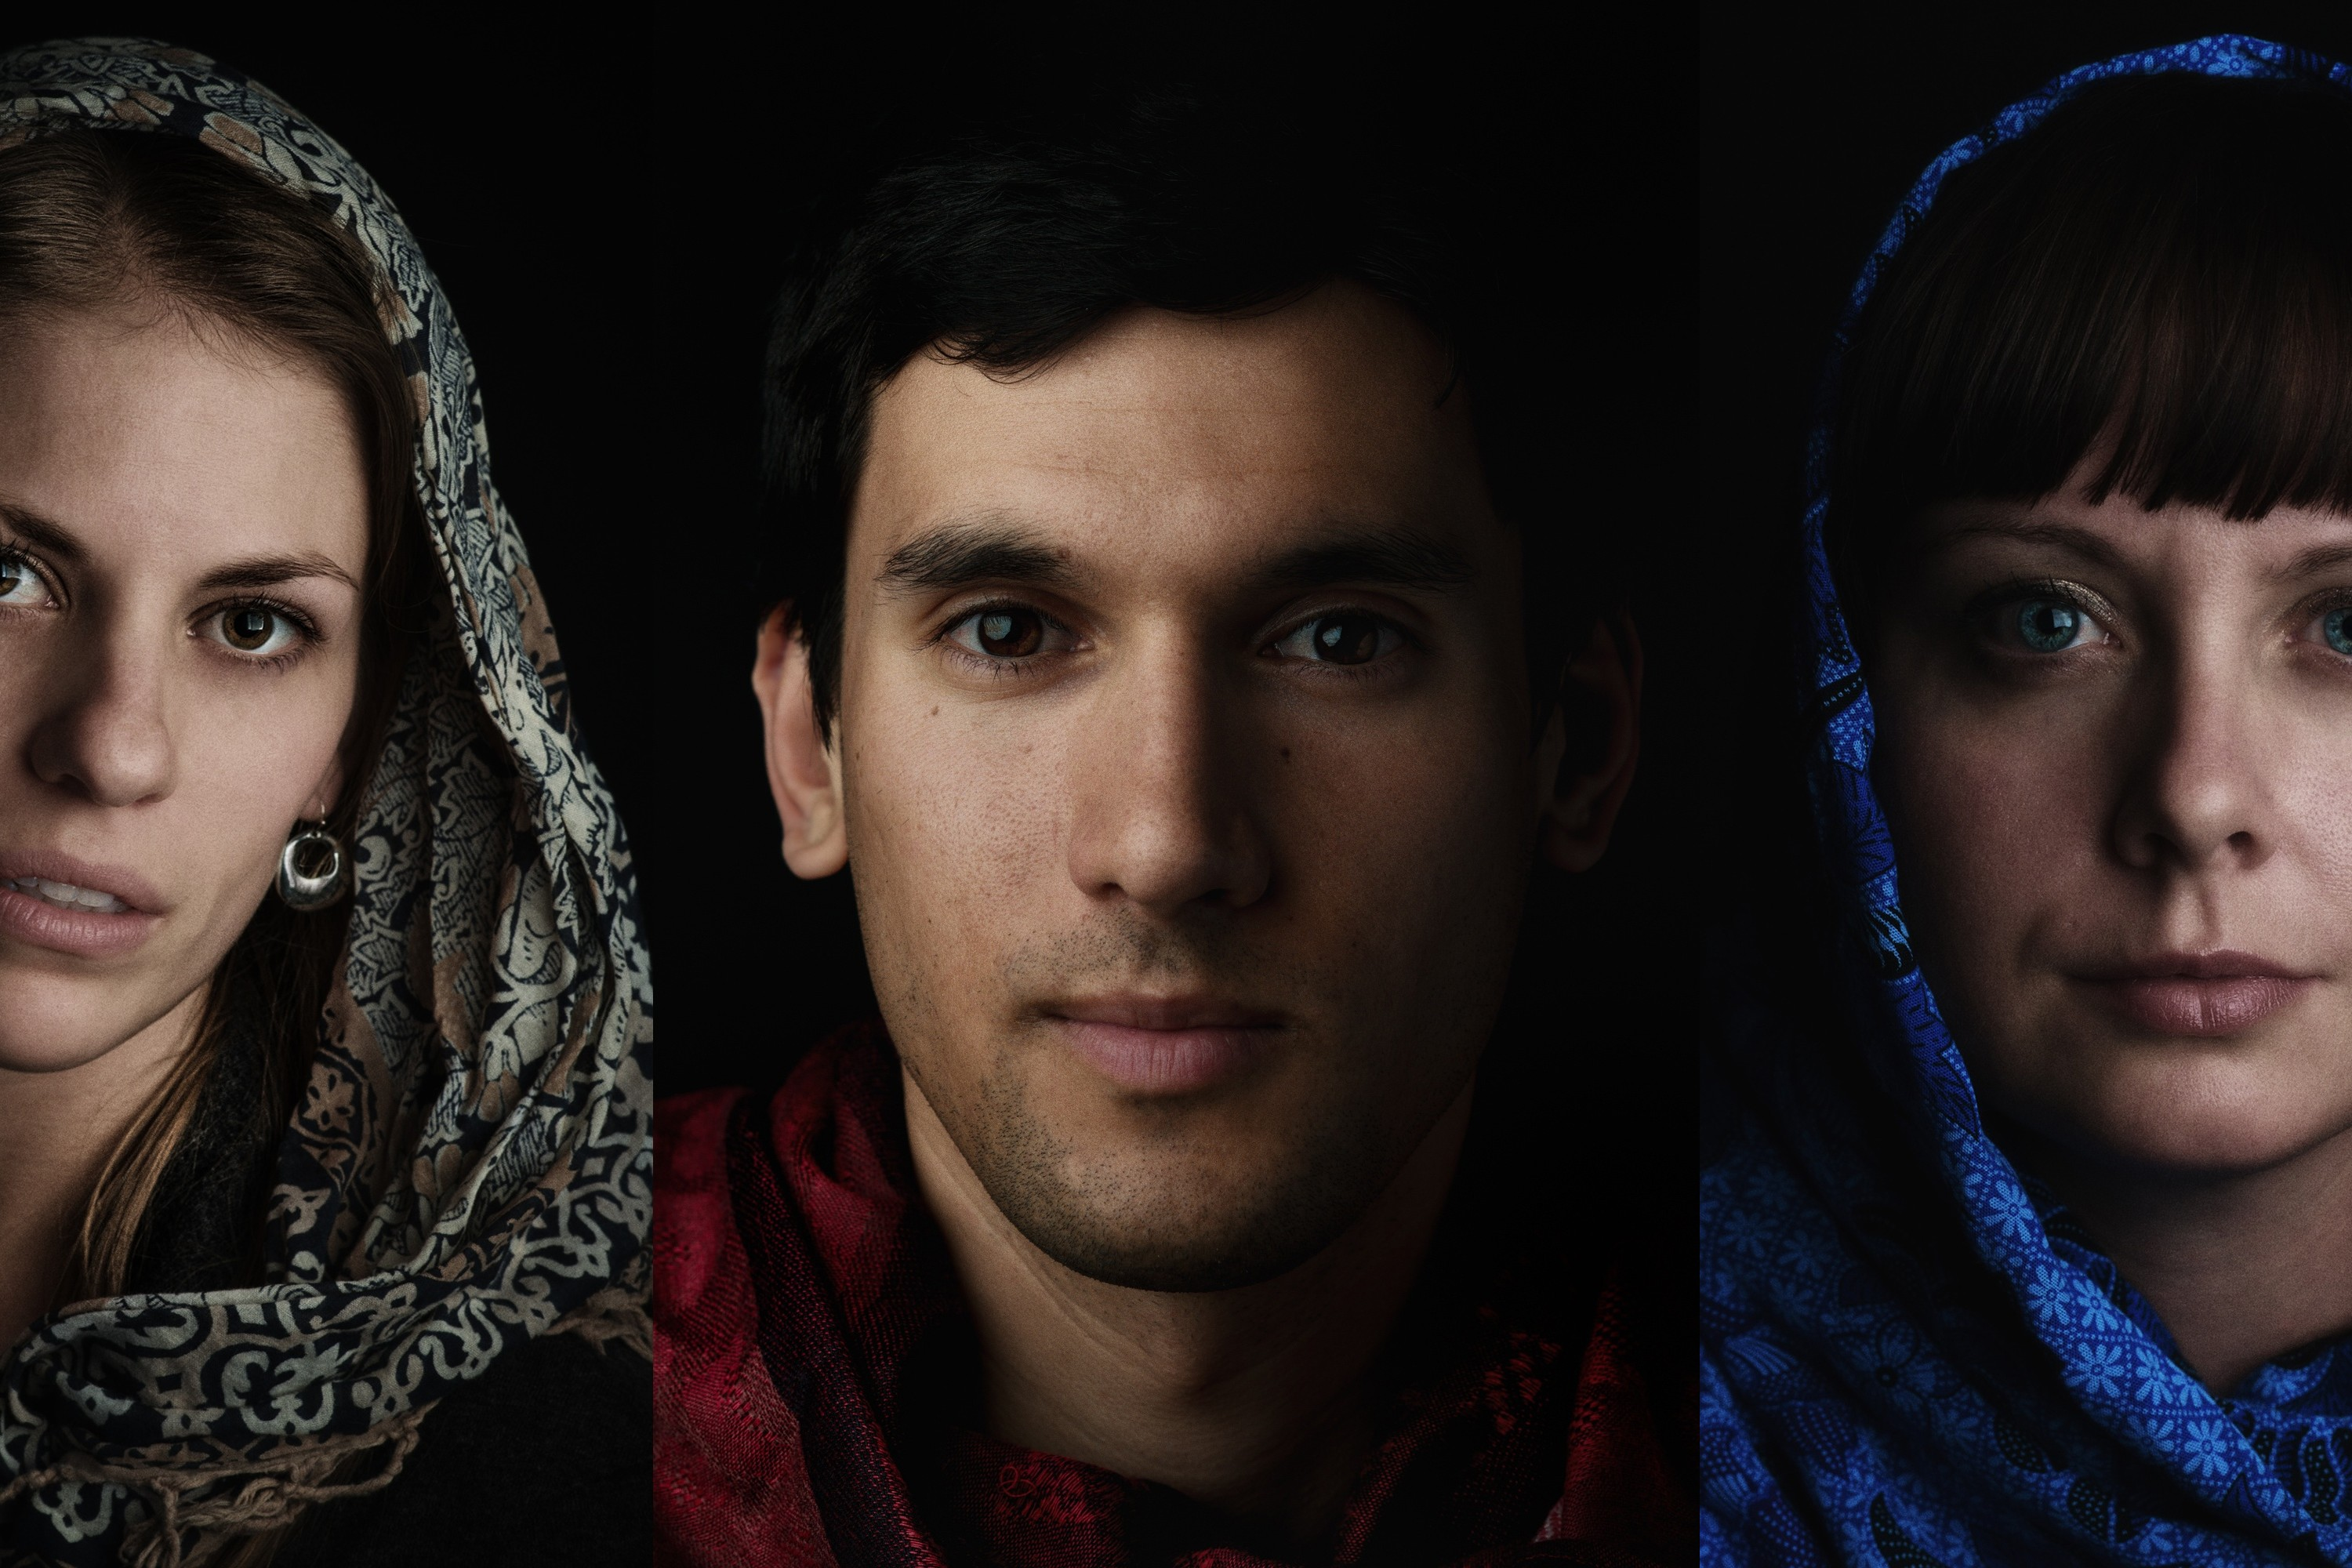 Tutorial: How to Capture Painterly Chiaroscuro Portraits